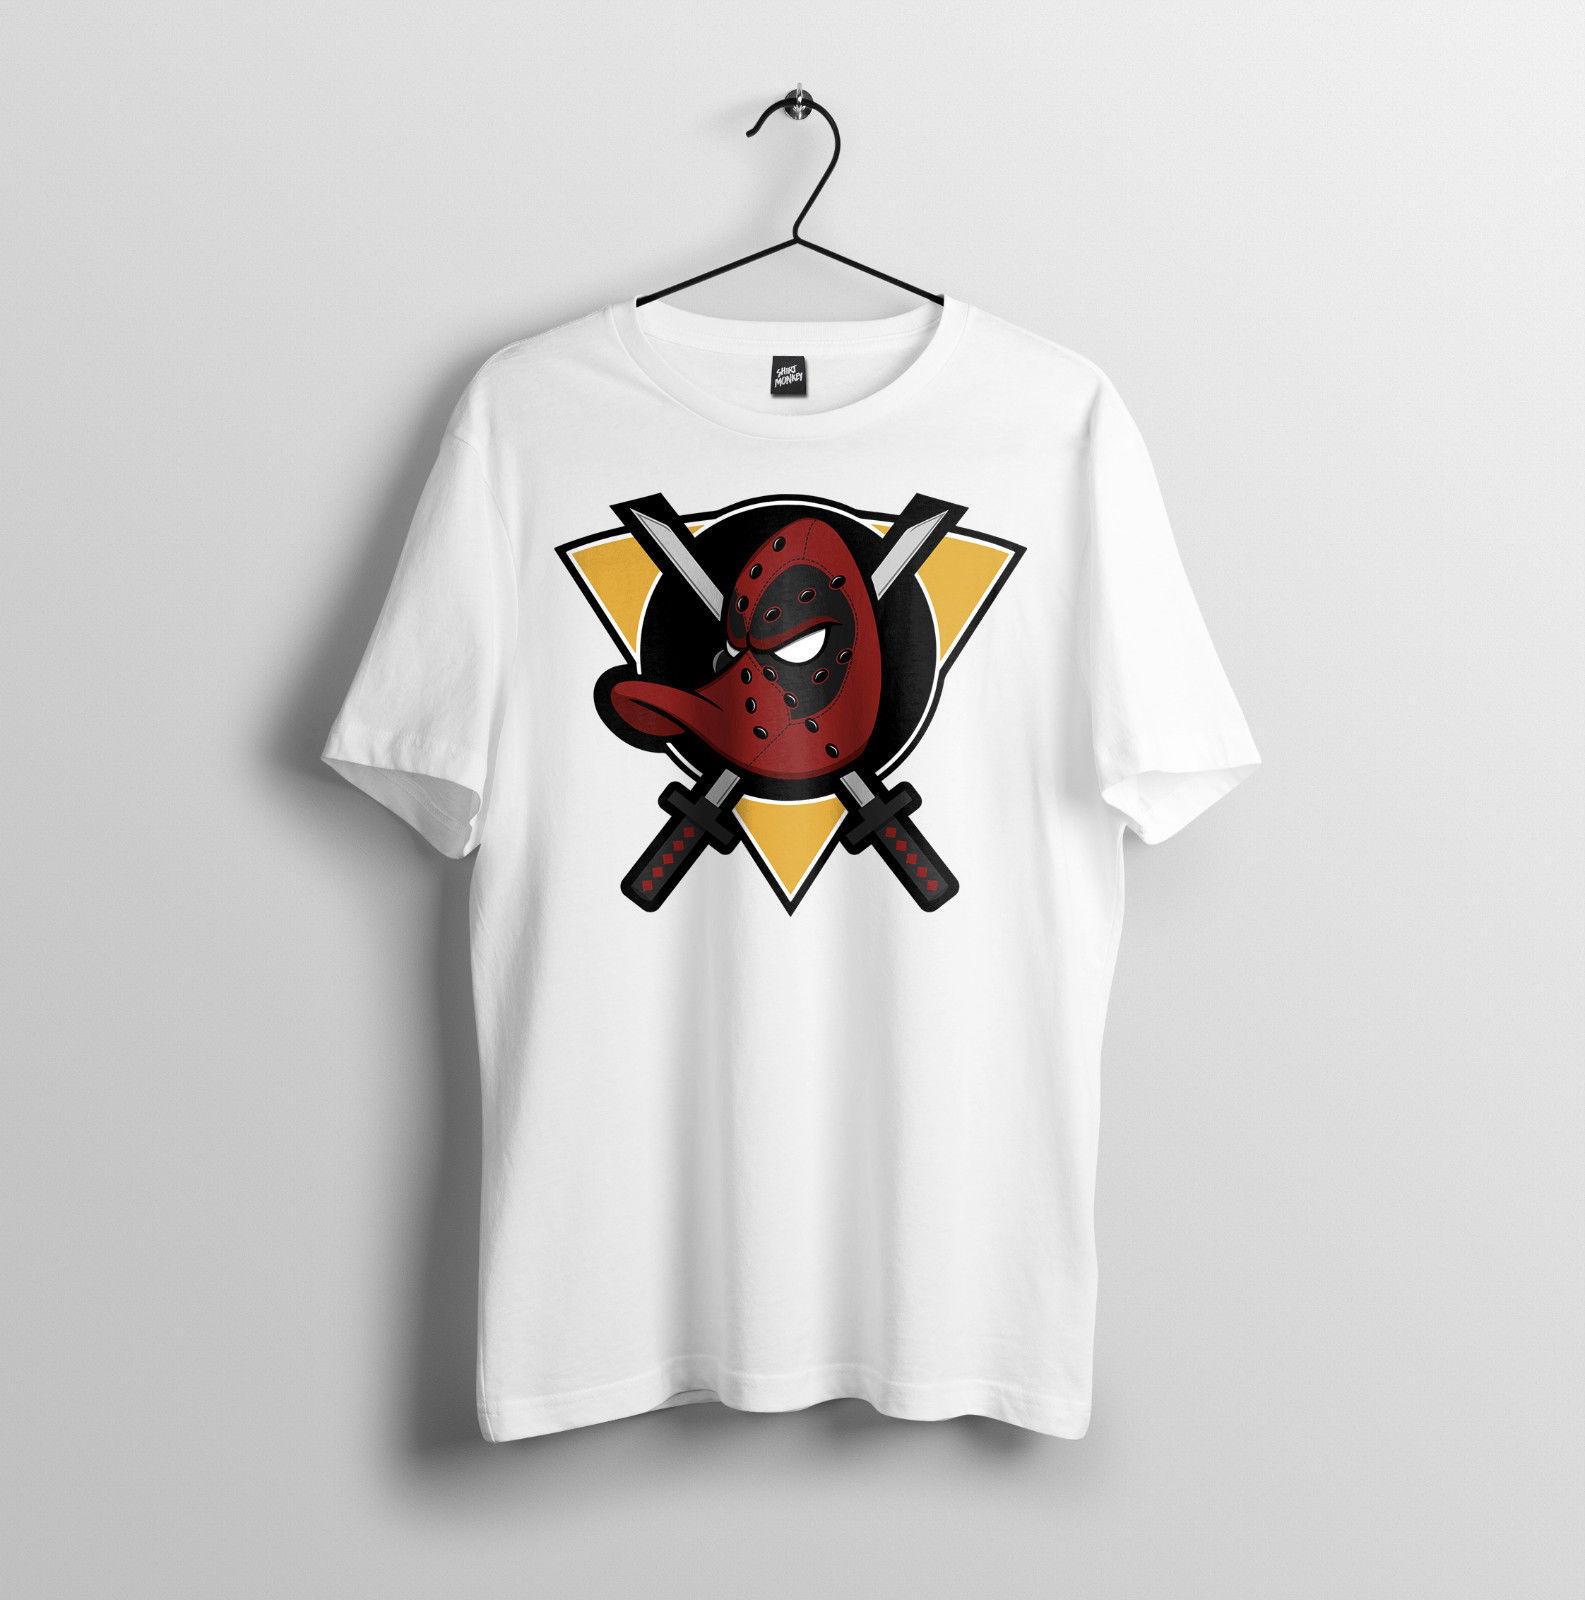 Deadpool amour vous, Mighty Ducks, Hockeyer, DuckPool Parodie-Mens Unisexe T-Shirt S-2XL